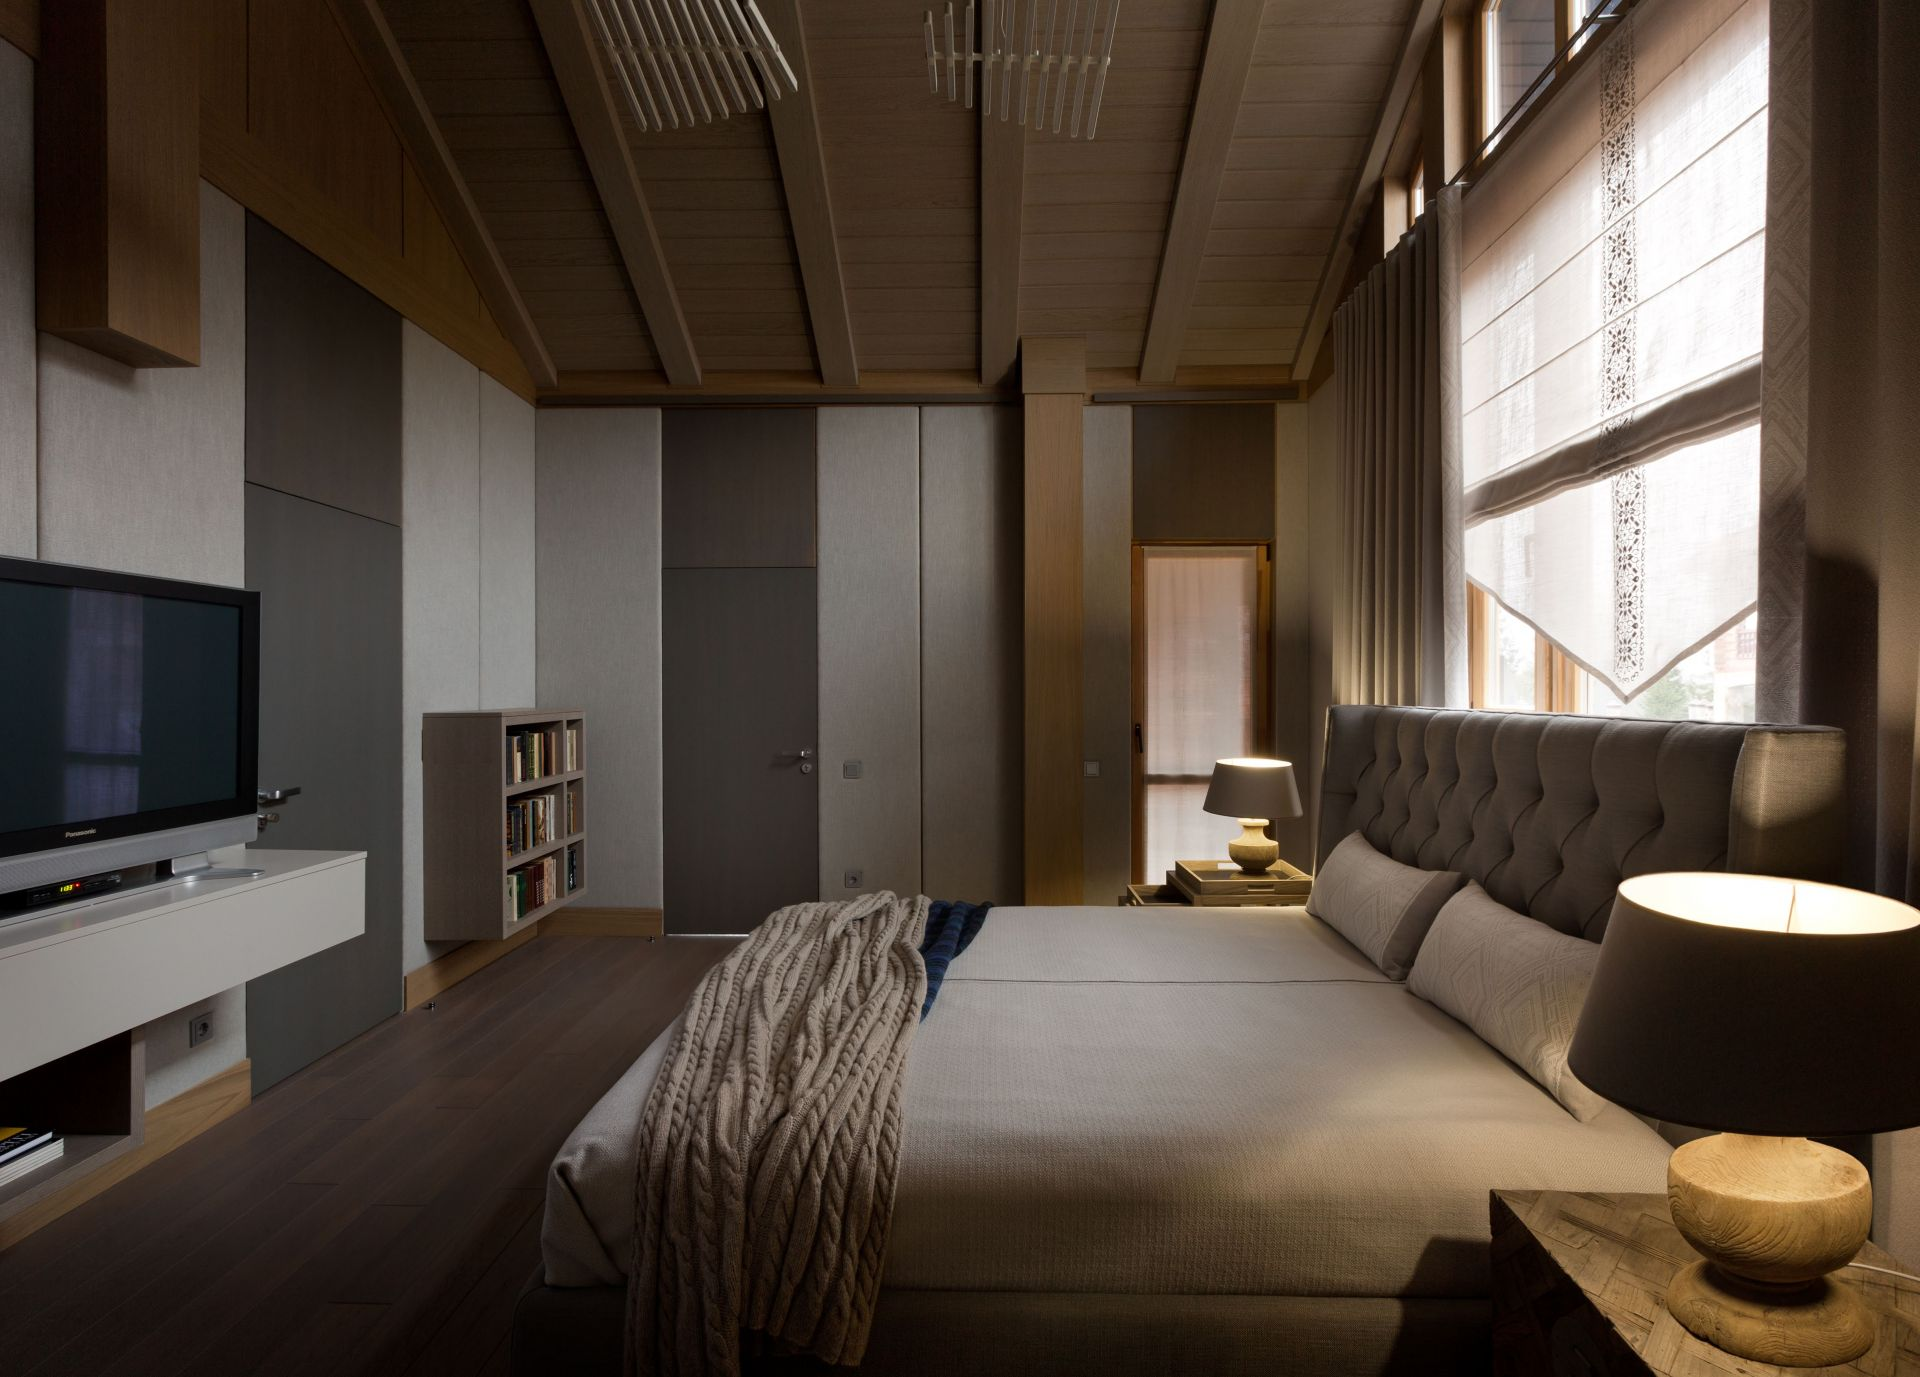 Wood, Modern bedroom with timbered interior